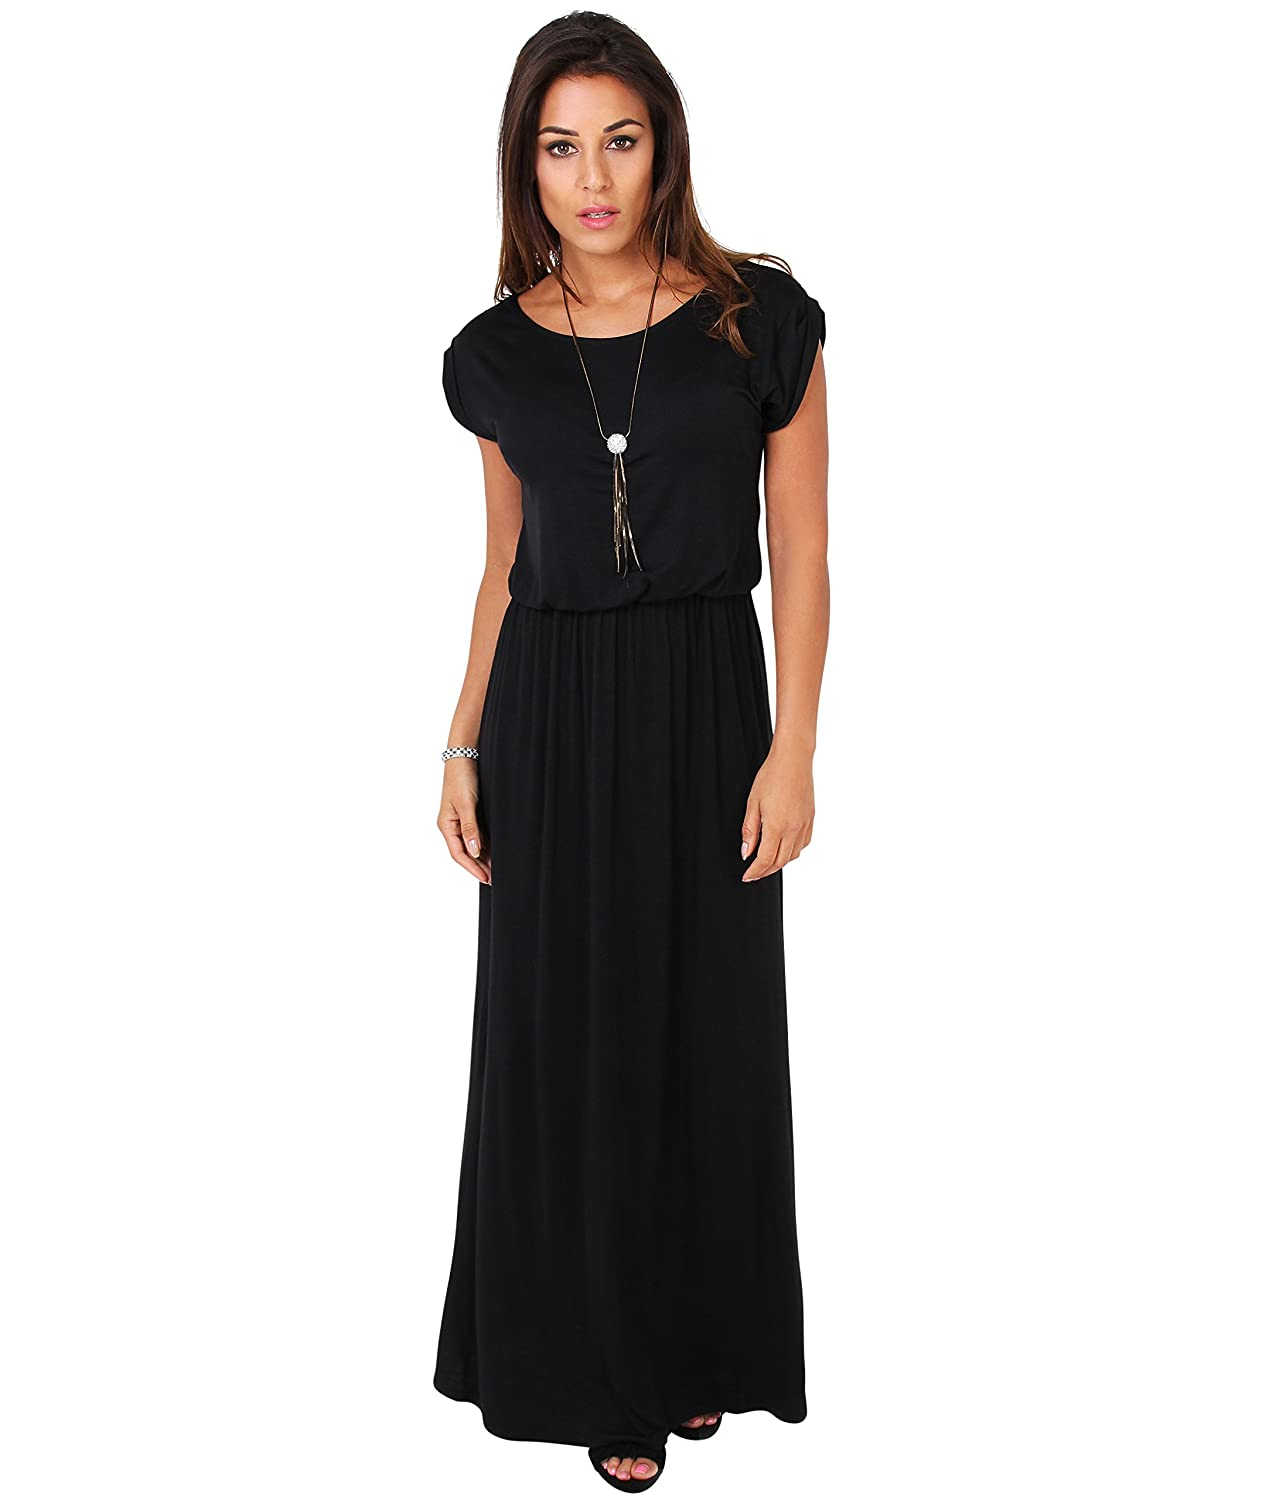 839a89ee800 Jersey Maxi Dress Amazon Uk - Gomes Weine AG